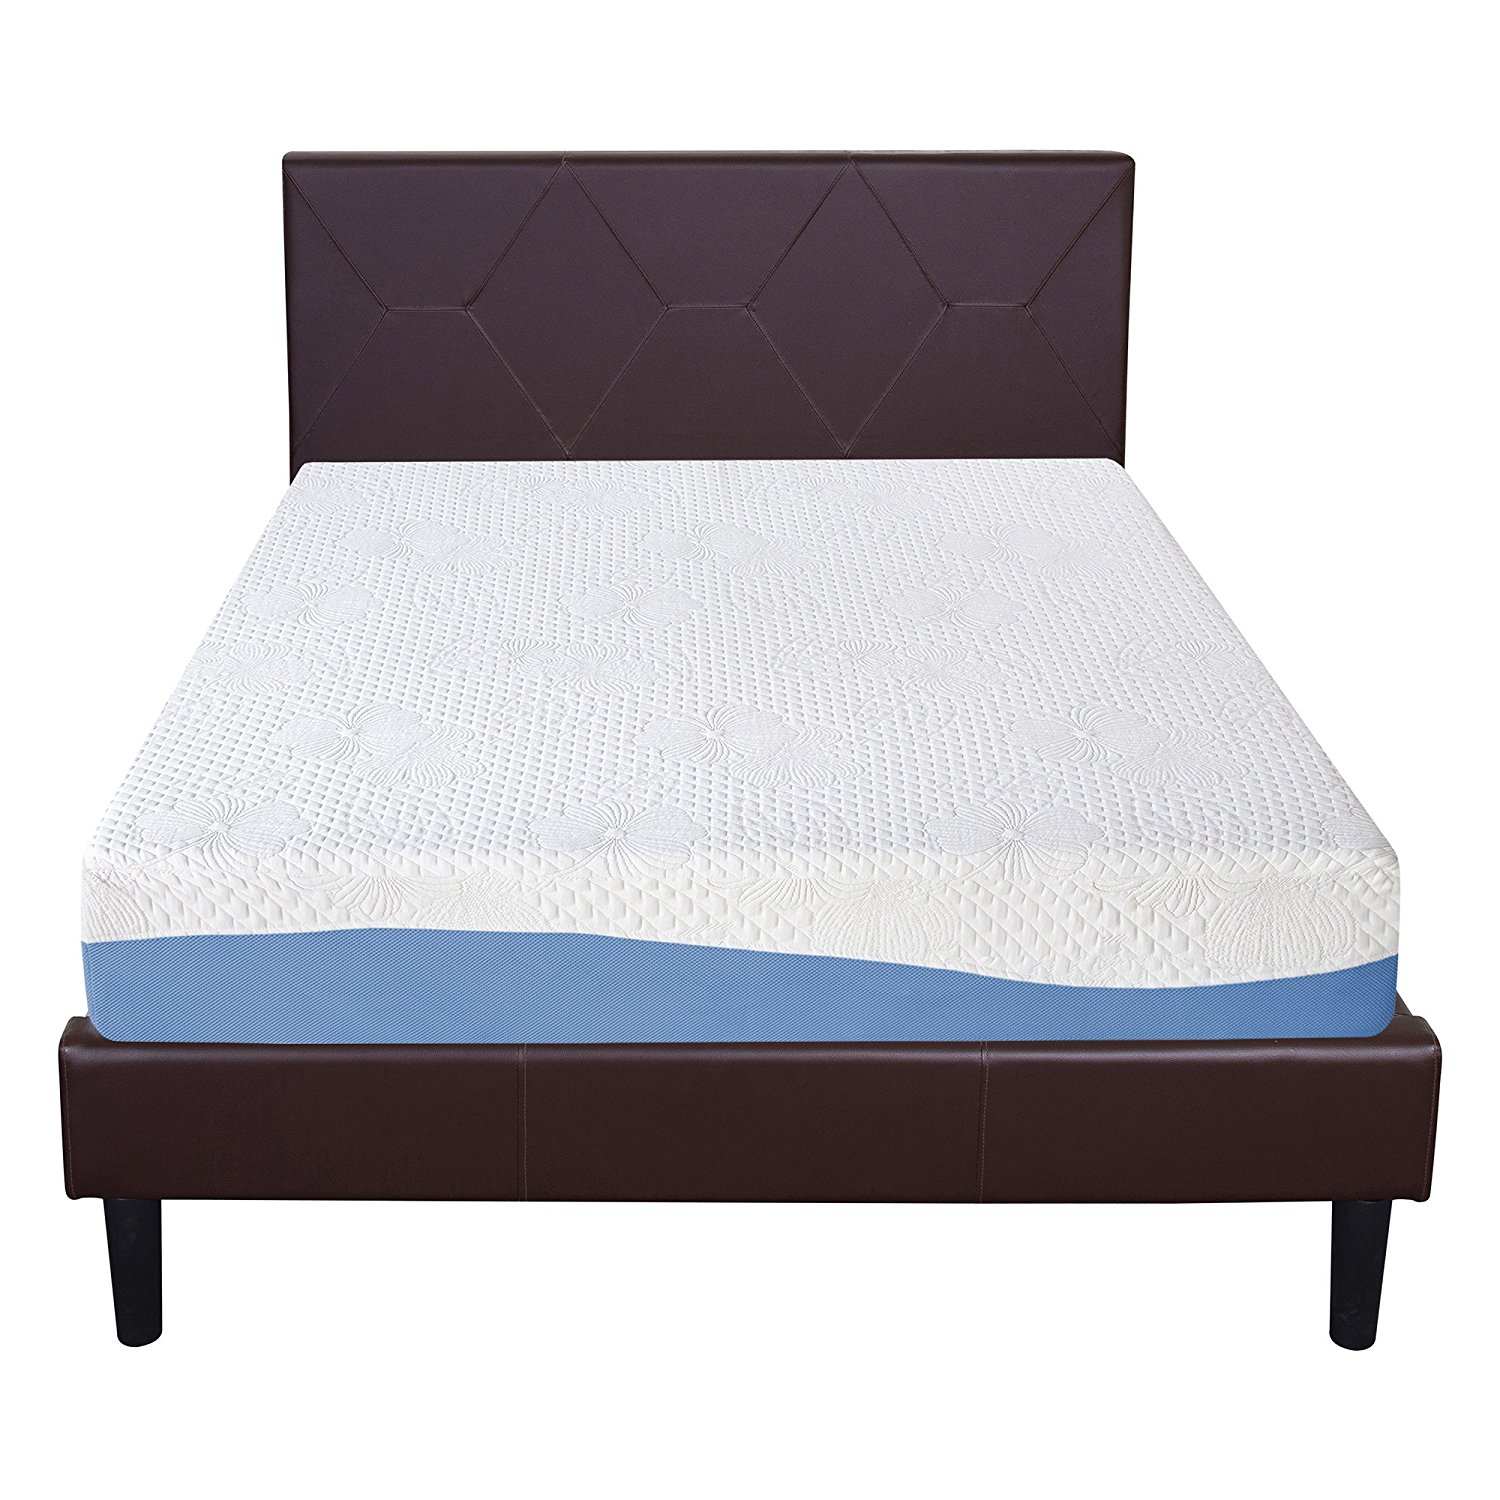 Best Queen Mattress Under 300 Best Cheap Reviews